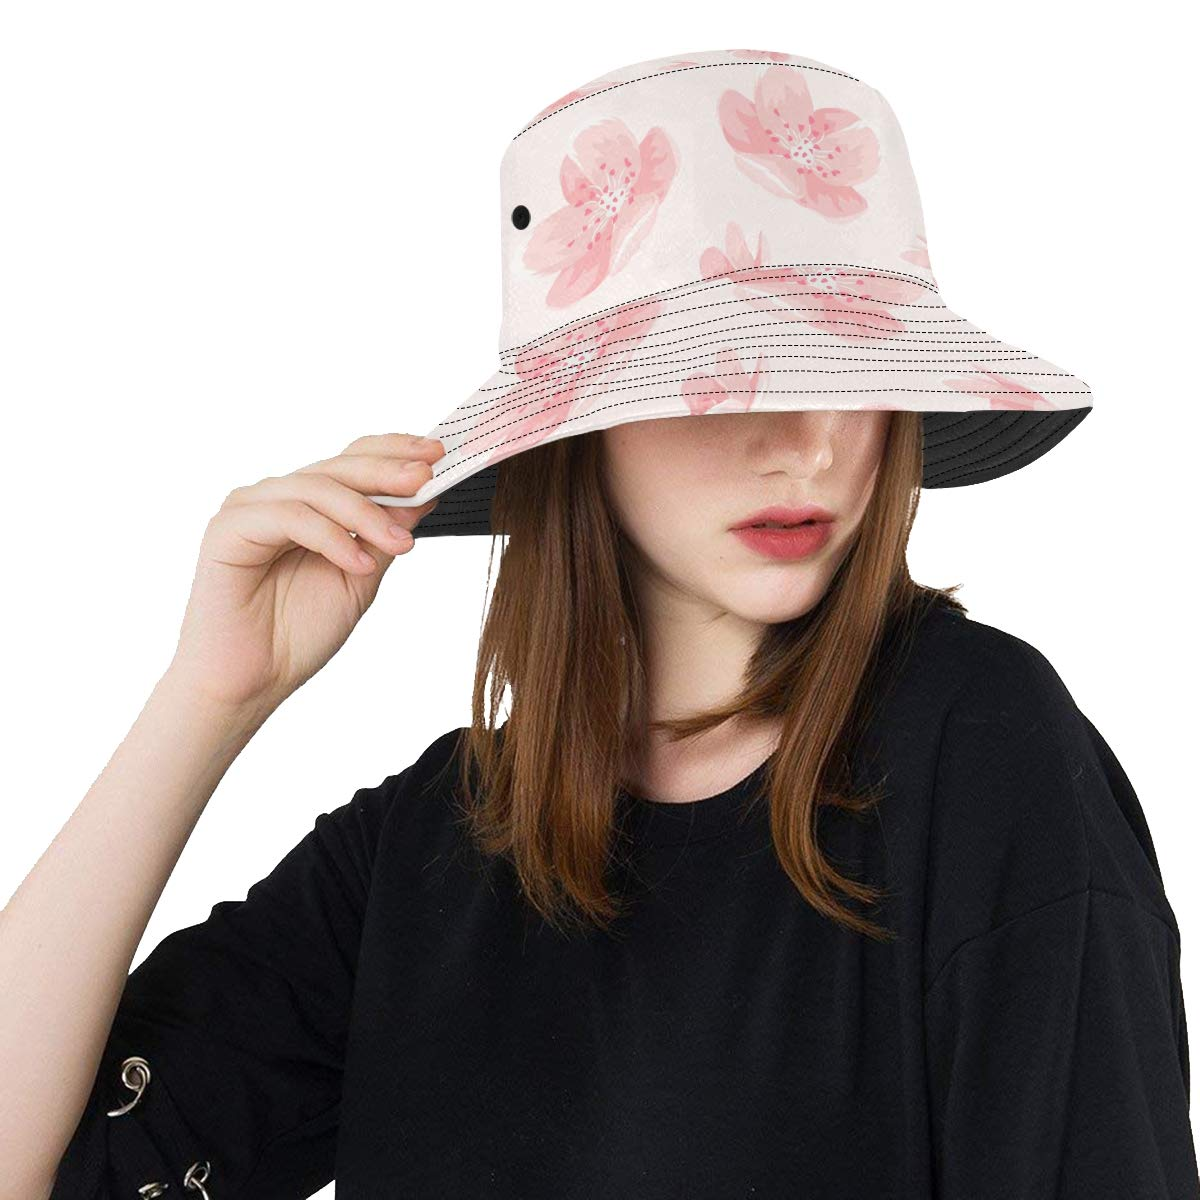 Pink Cheery Blossom Sakura Flower New Summer Unisex Cotton Fashion Fishing Sun Bucket Hats for Kid Teens Women and Men with Customize Top Packable Fisherman Cap for Outdoor Travel